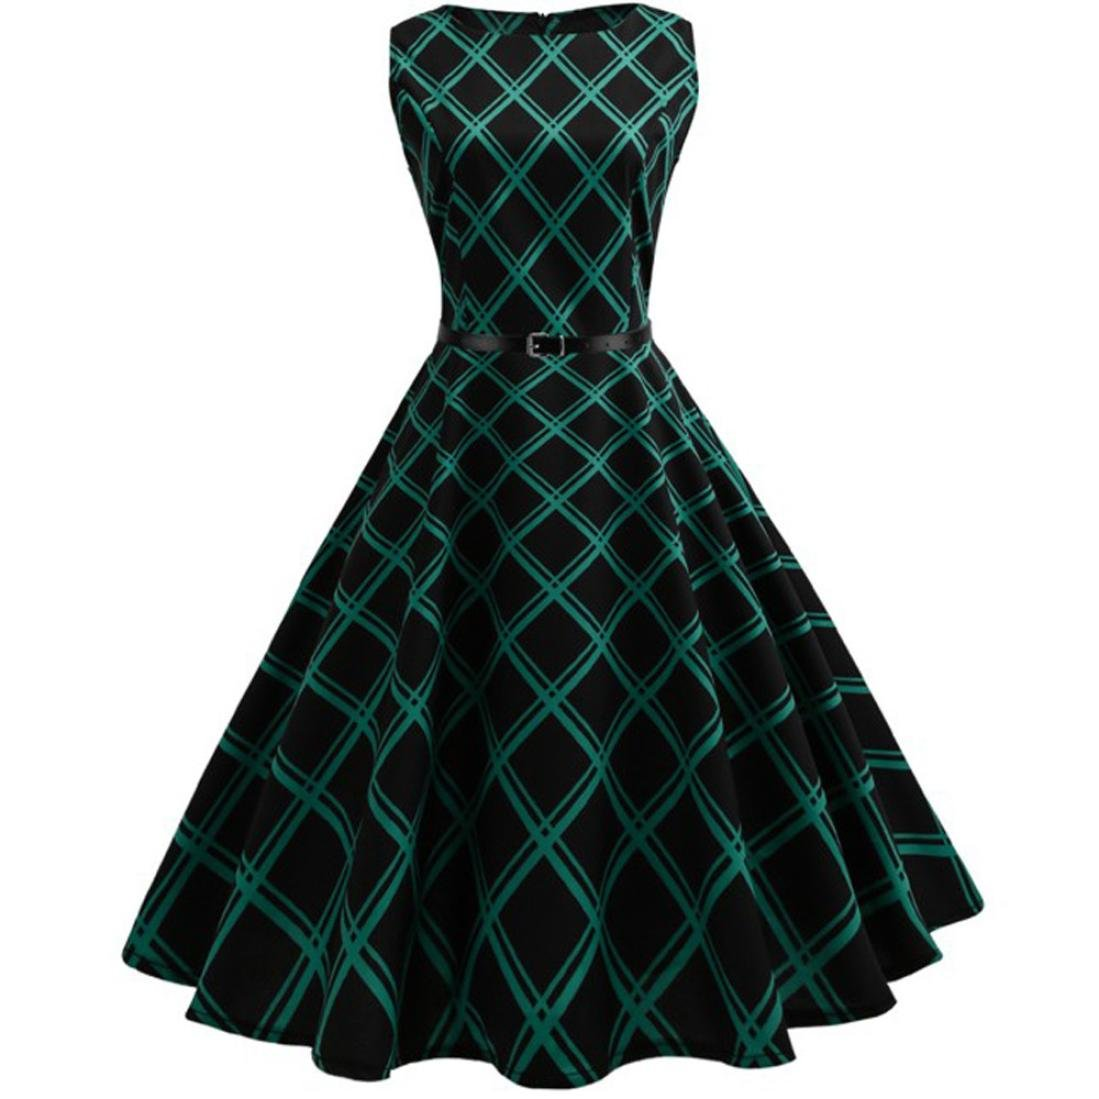 Mini Dress,Fashion Womens Dress Sleeveless Vintage Bodycon Plaid Casual O-Neck Evening Party Dress (L, Green)